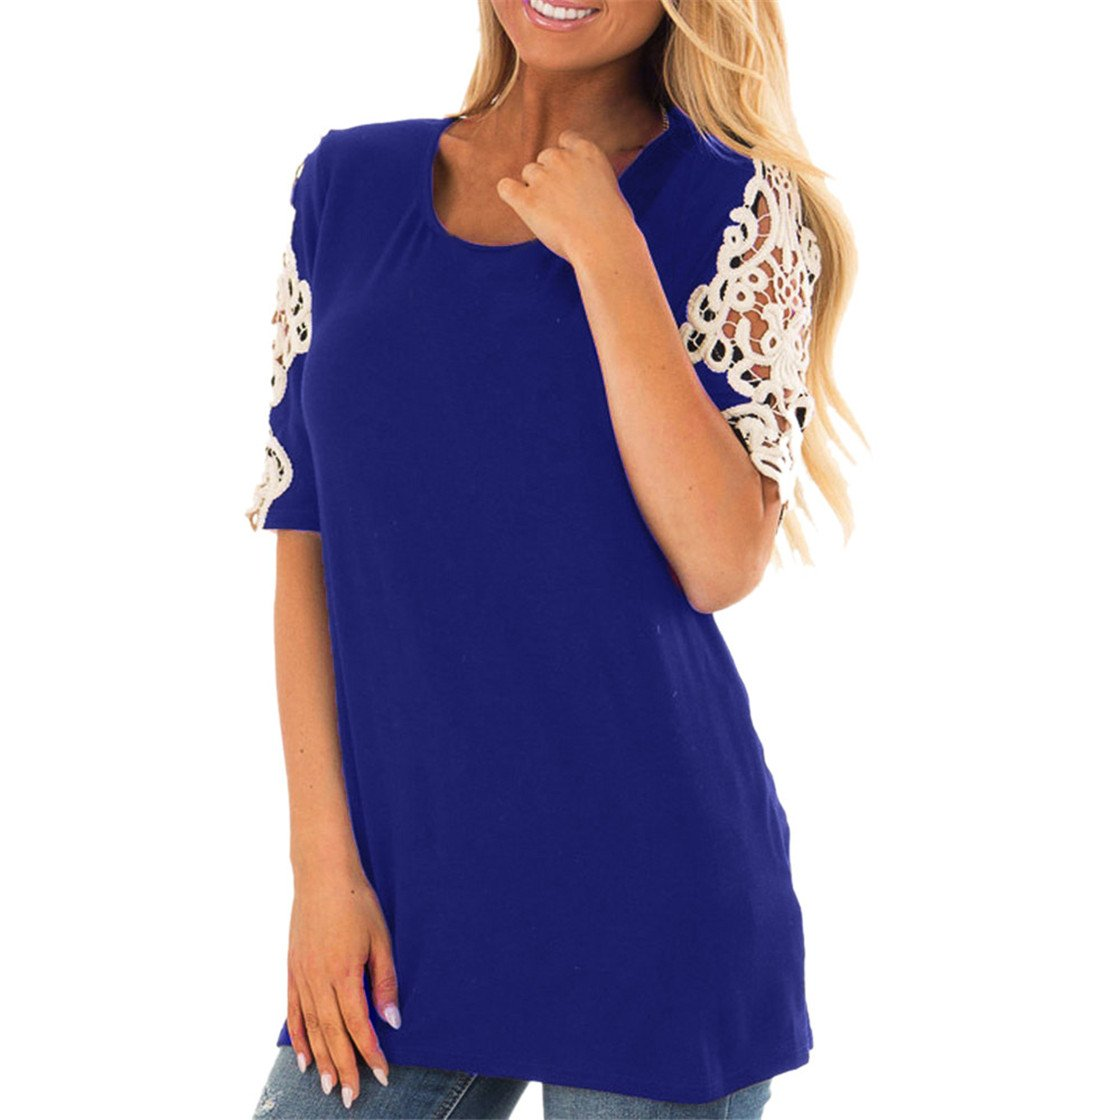 Mose Shirts for Women, Fashion Women Casual Blouse Short Sleeve O Neck Lace Stitching Patchwork Crop Tops Solid T-Shirt New (L, Blue)